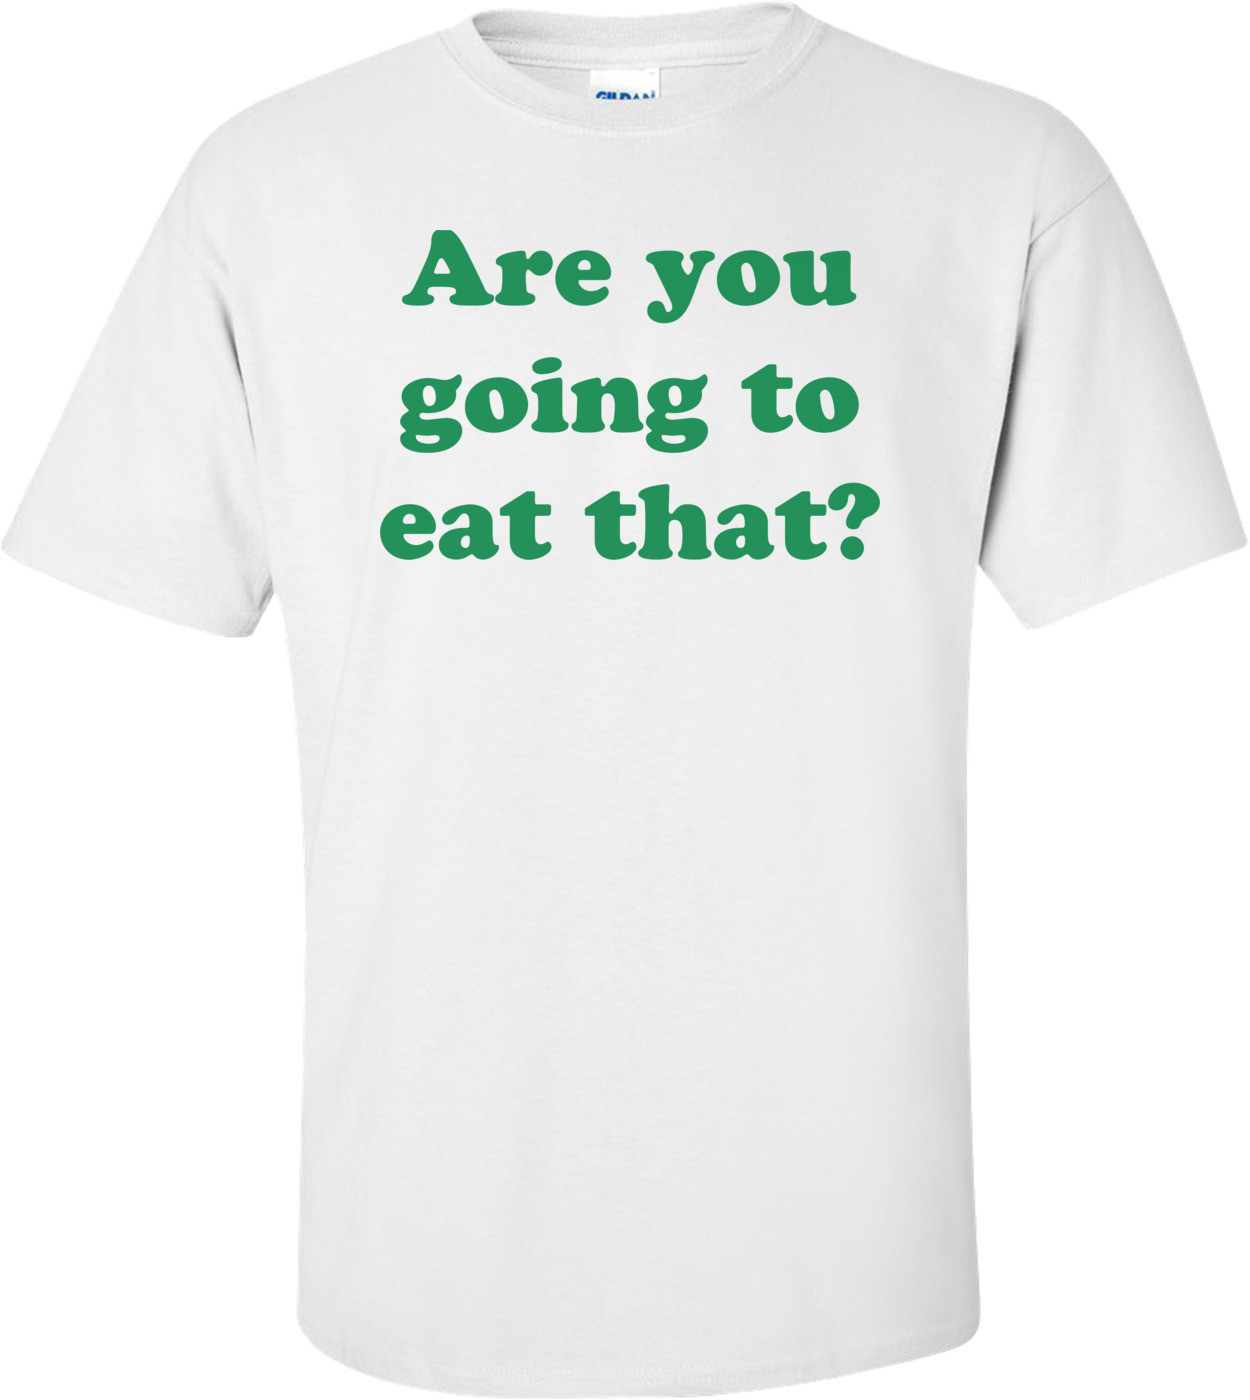 Are you going to eat that? Shirt